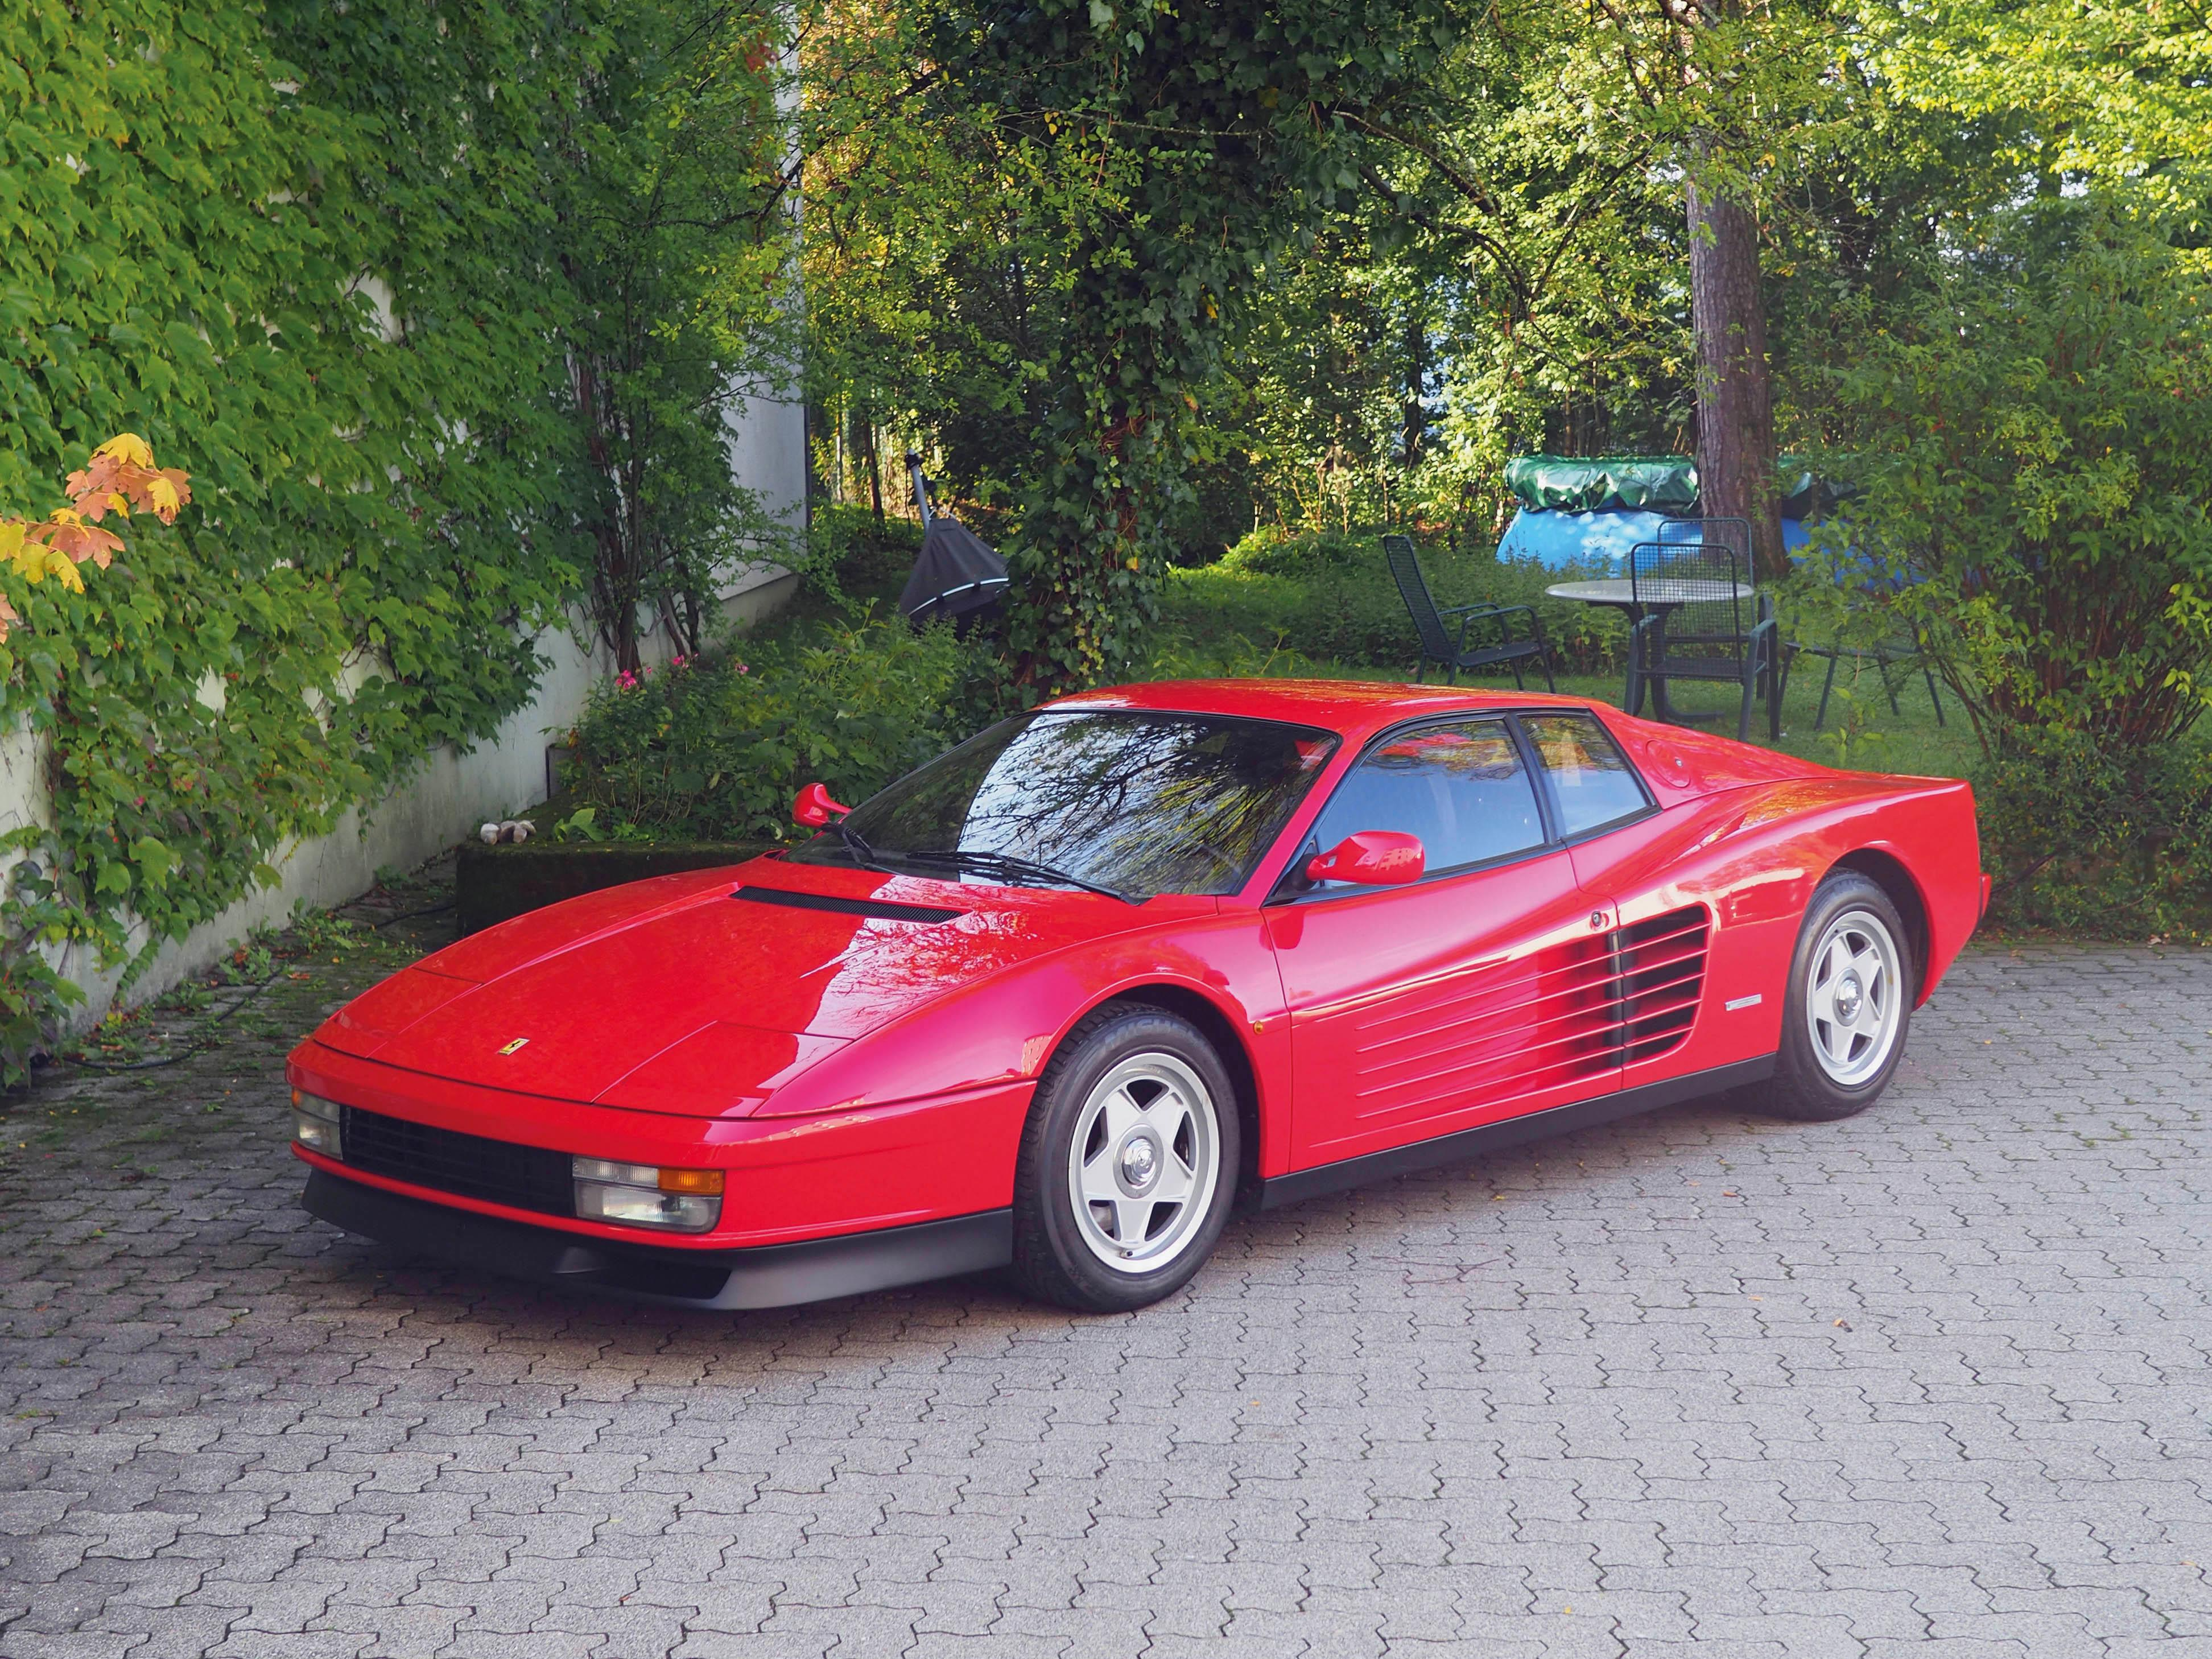 1987 ferrari testarossa monodado klassische fahrzeuge. Black Bedroom Furniture Sets. Home Design Ideas